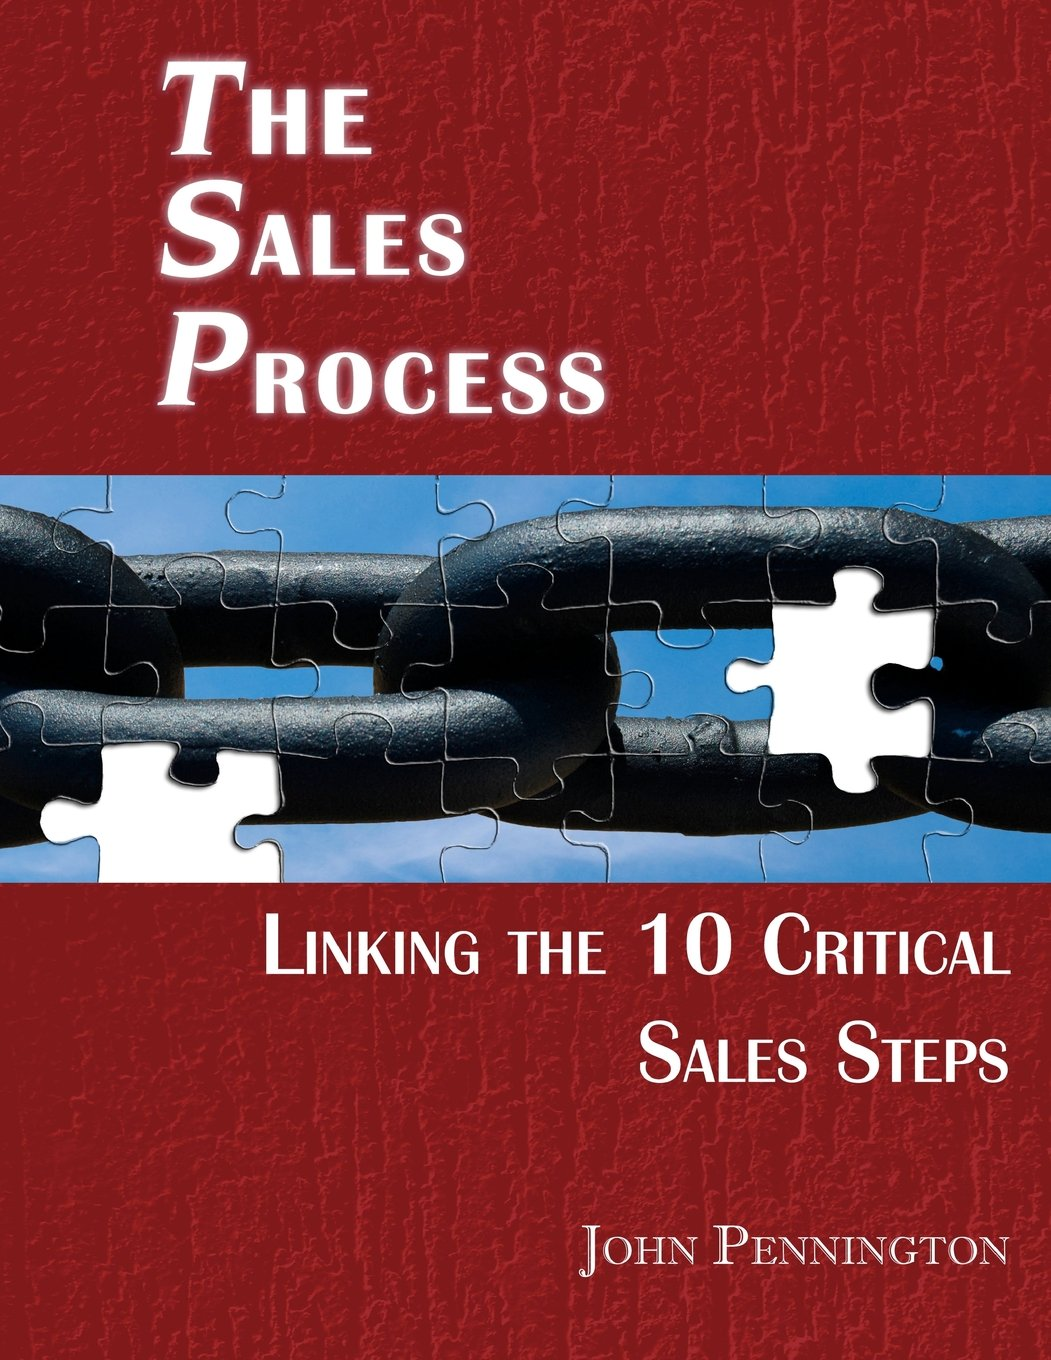 amazon the sales process linking the 10 critical sales steps